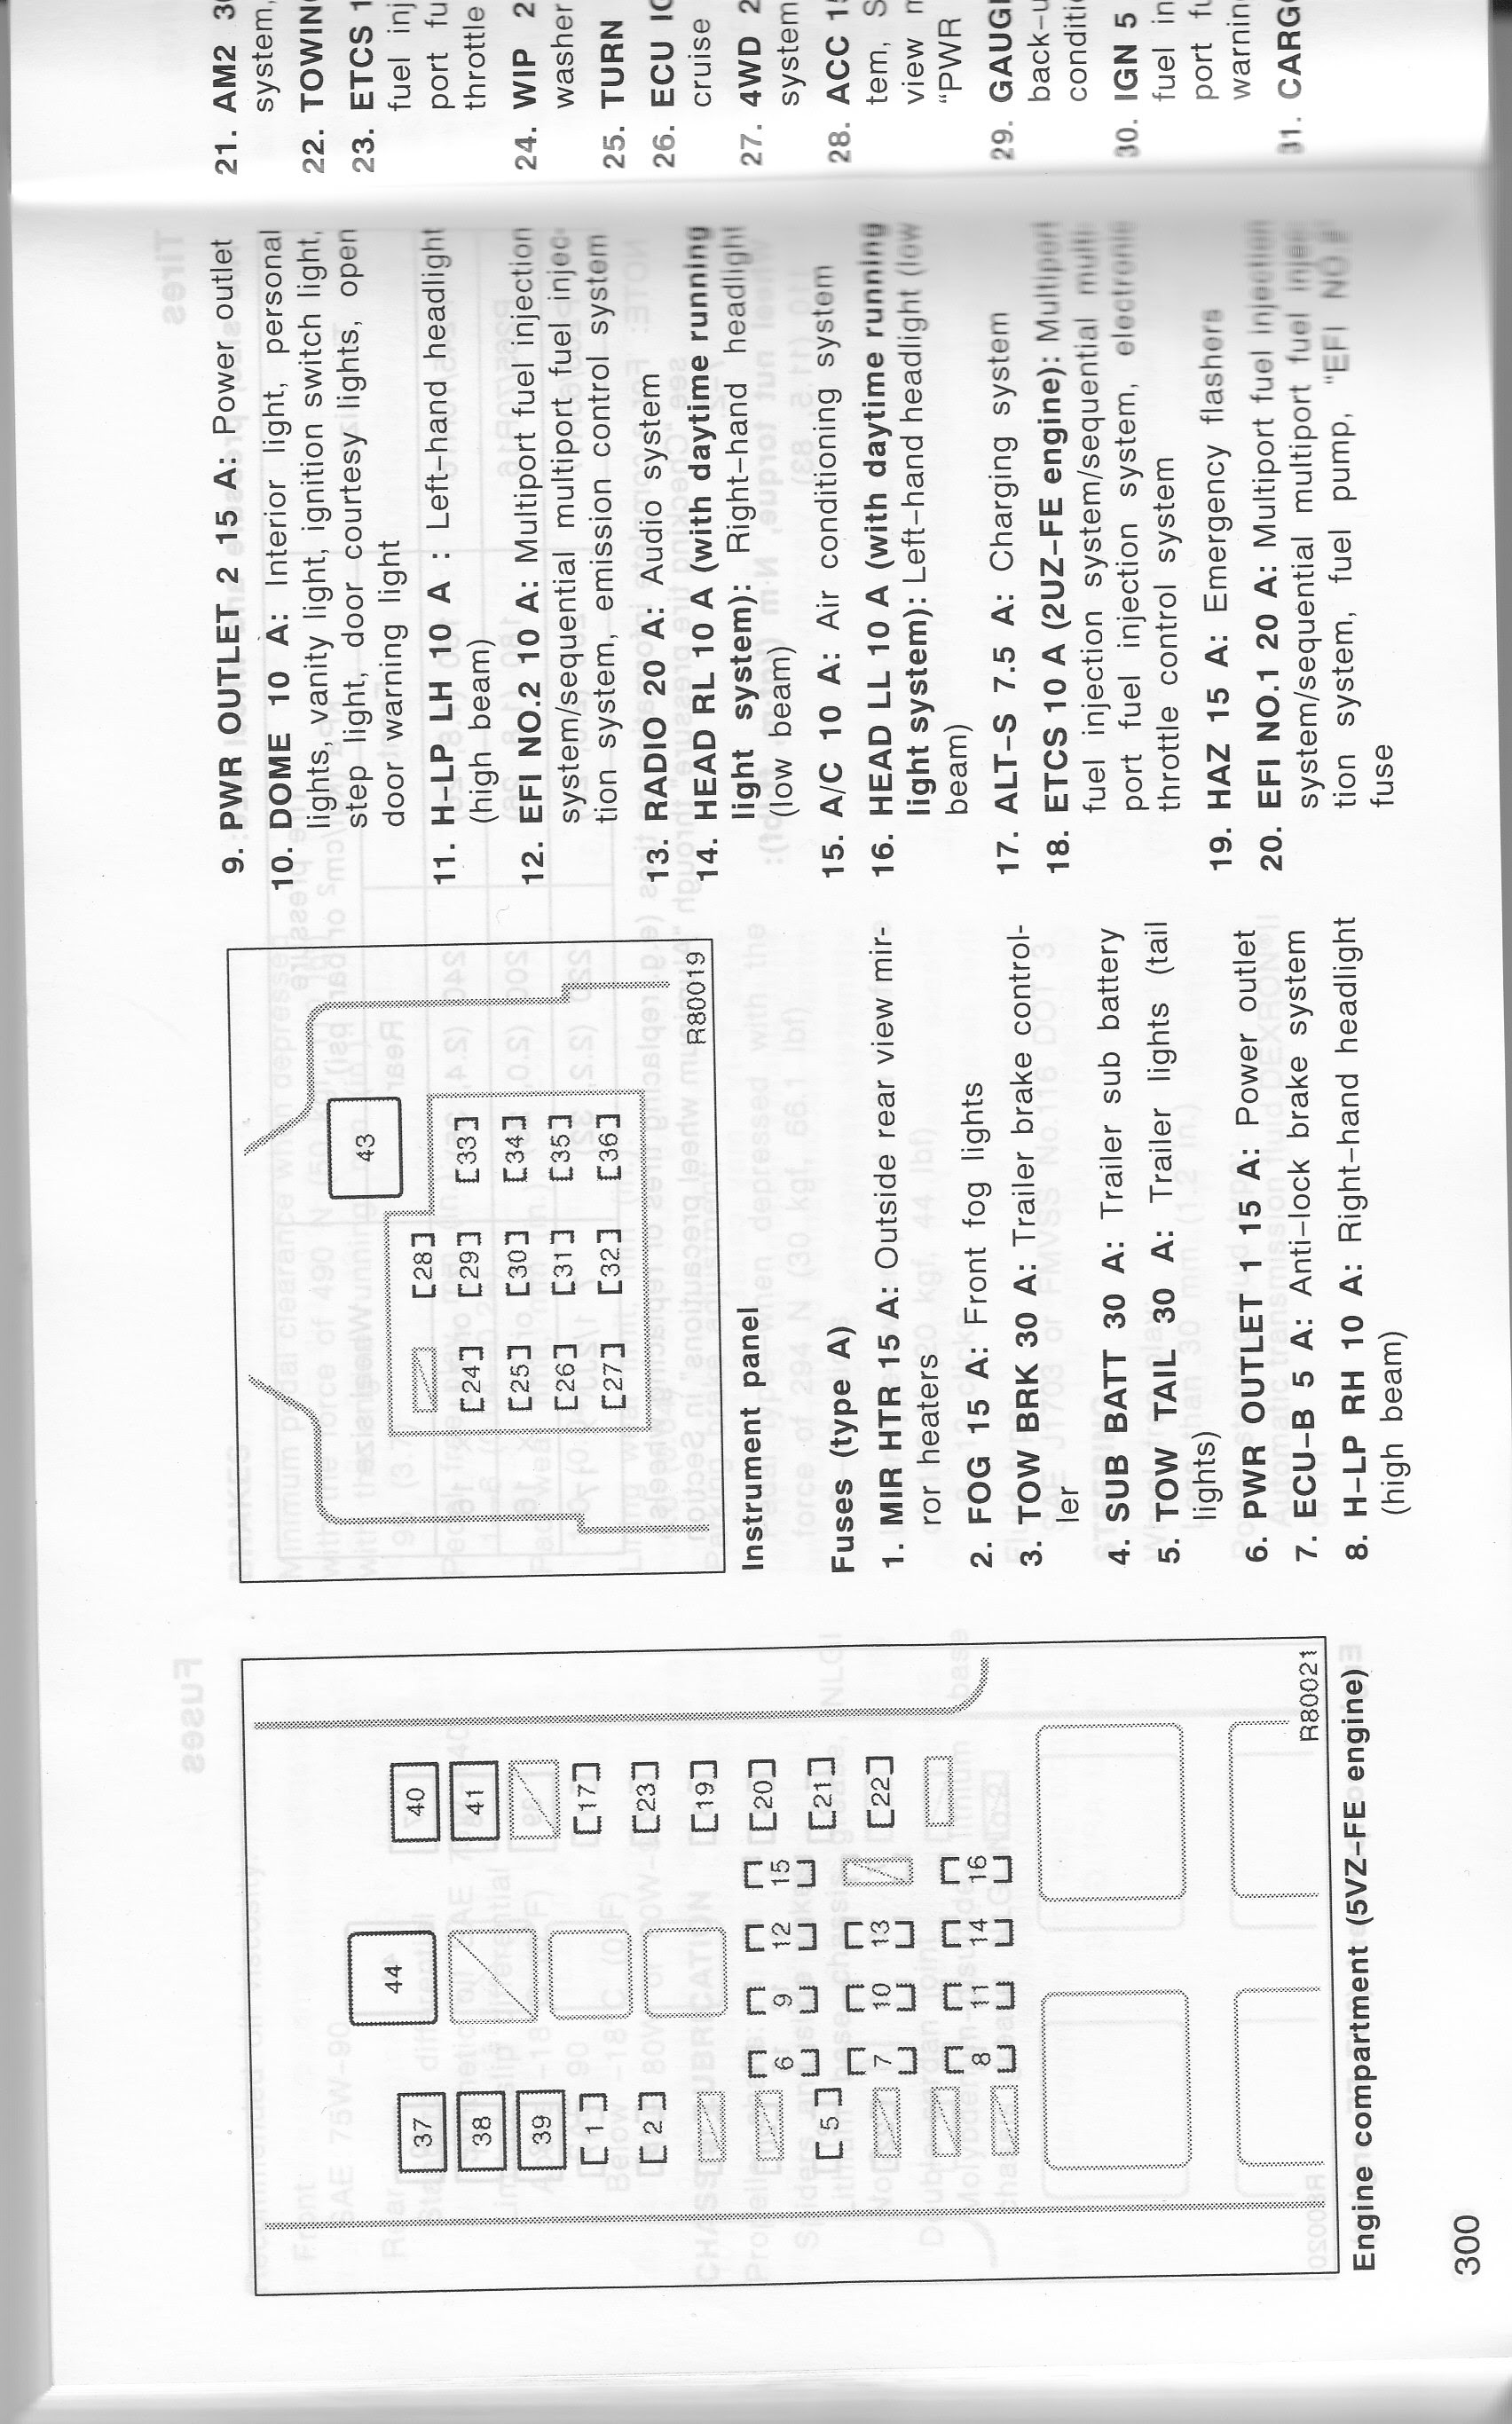 07 Tundra Fuse Diagram Home Wiring 12v Begeboy Wiring Diagram Source